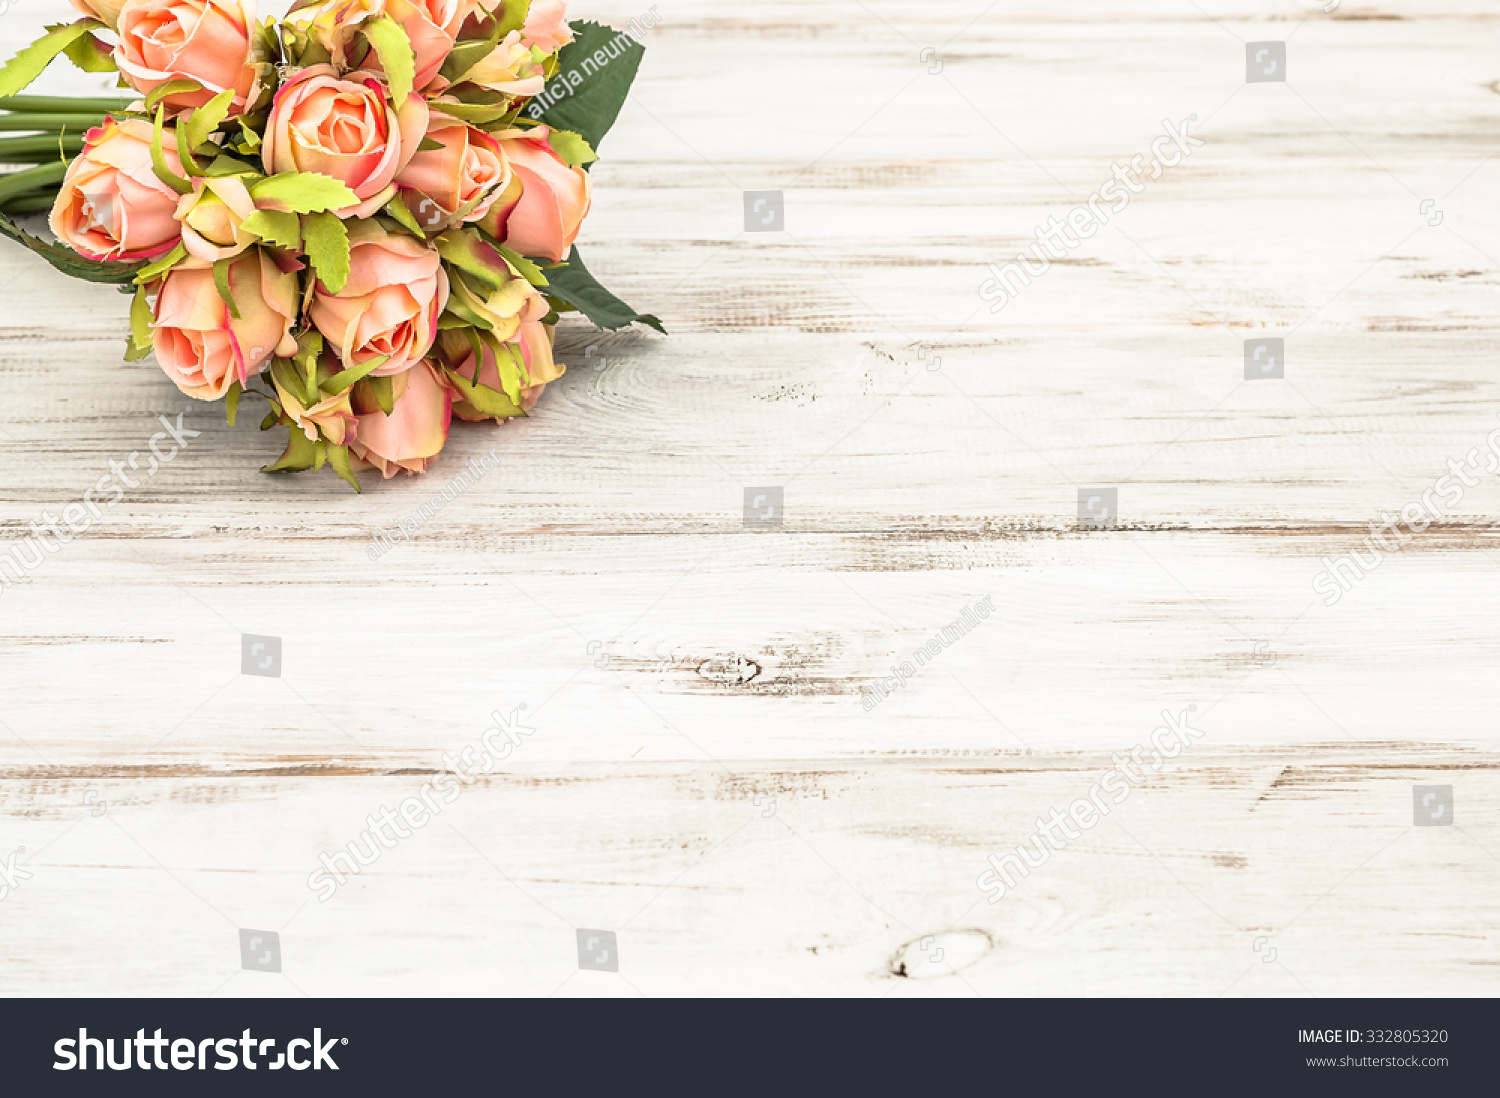 Beautiful Roses On Rustic Wood Background Flowers Backgrounds